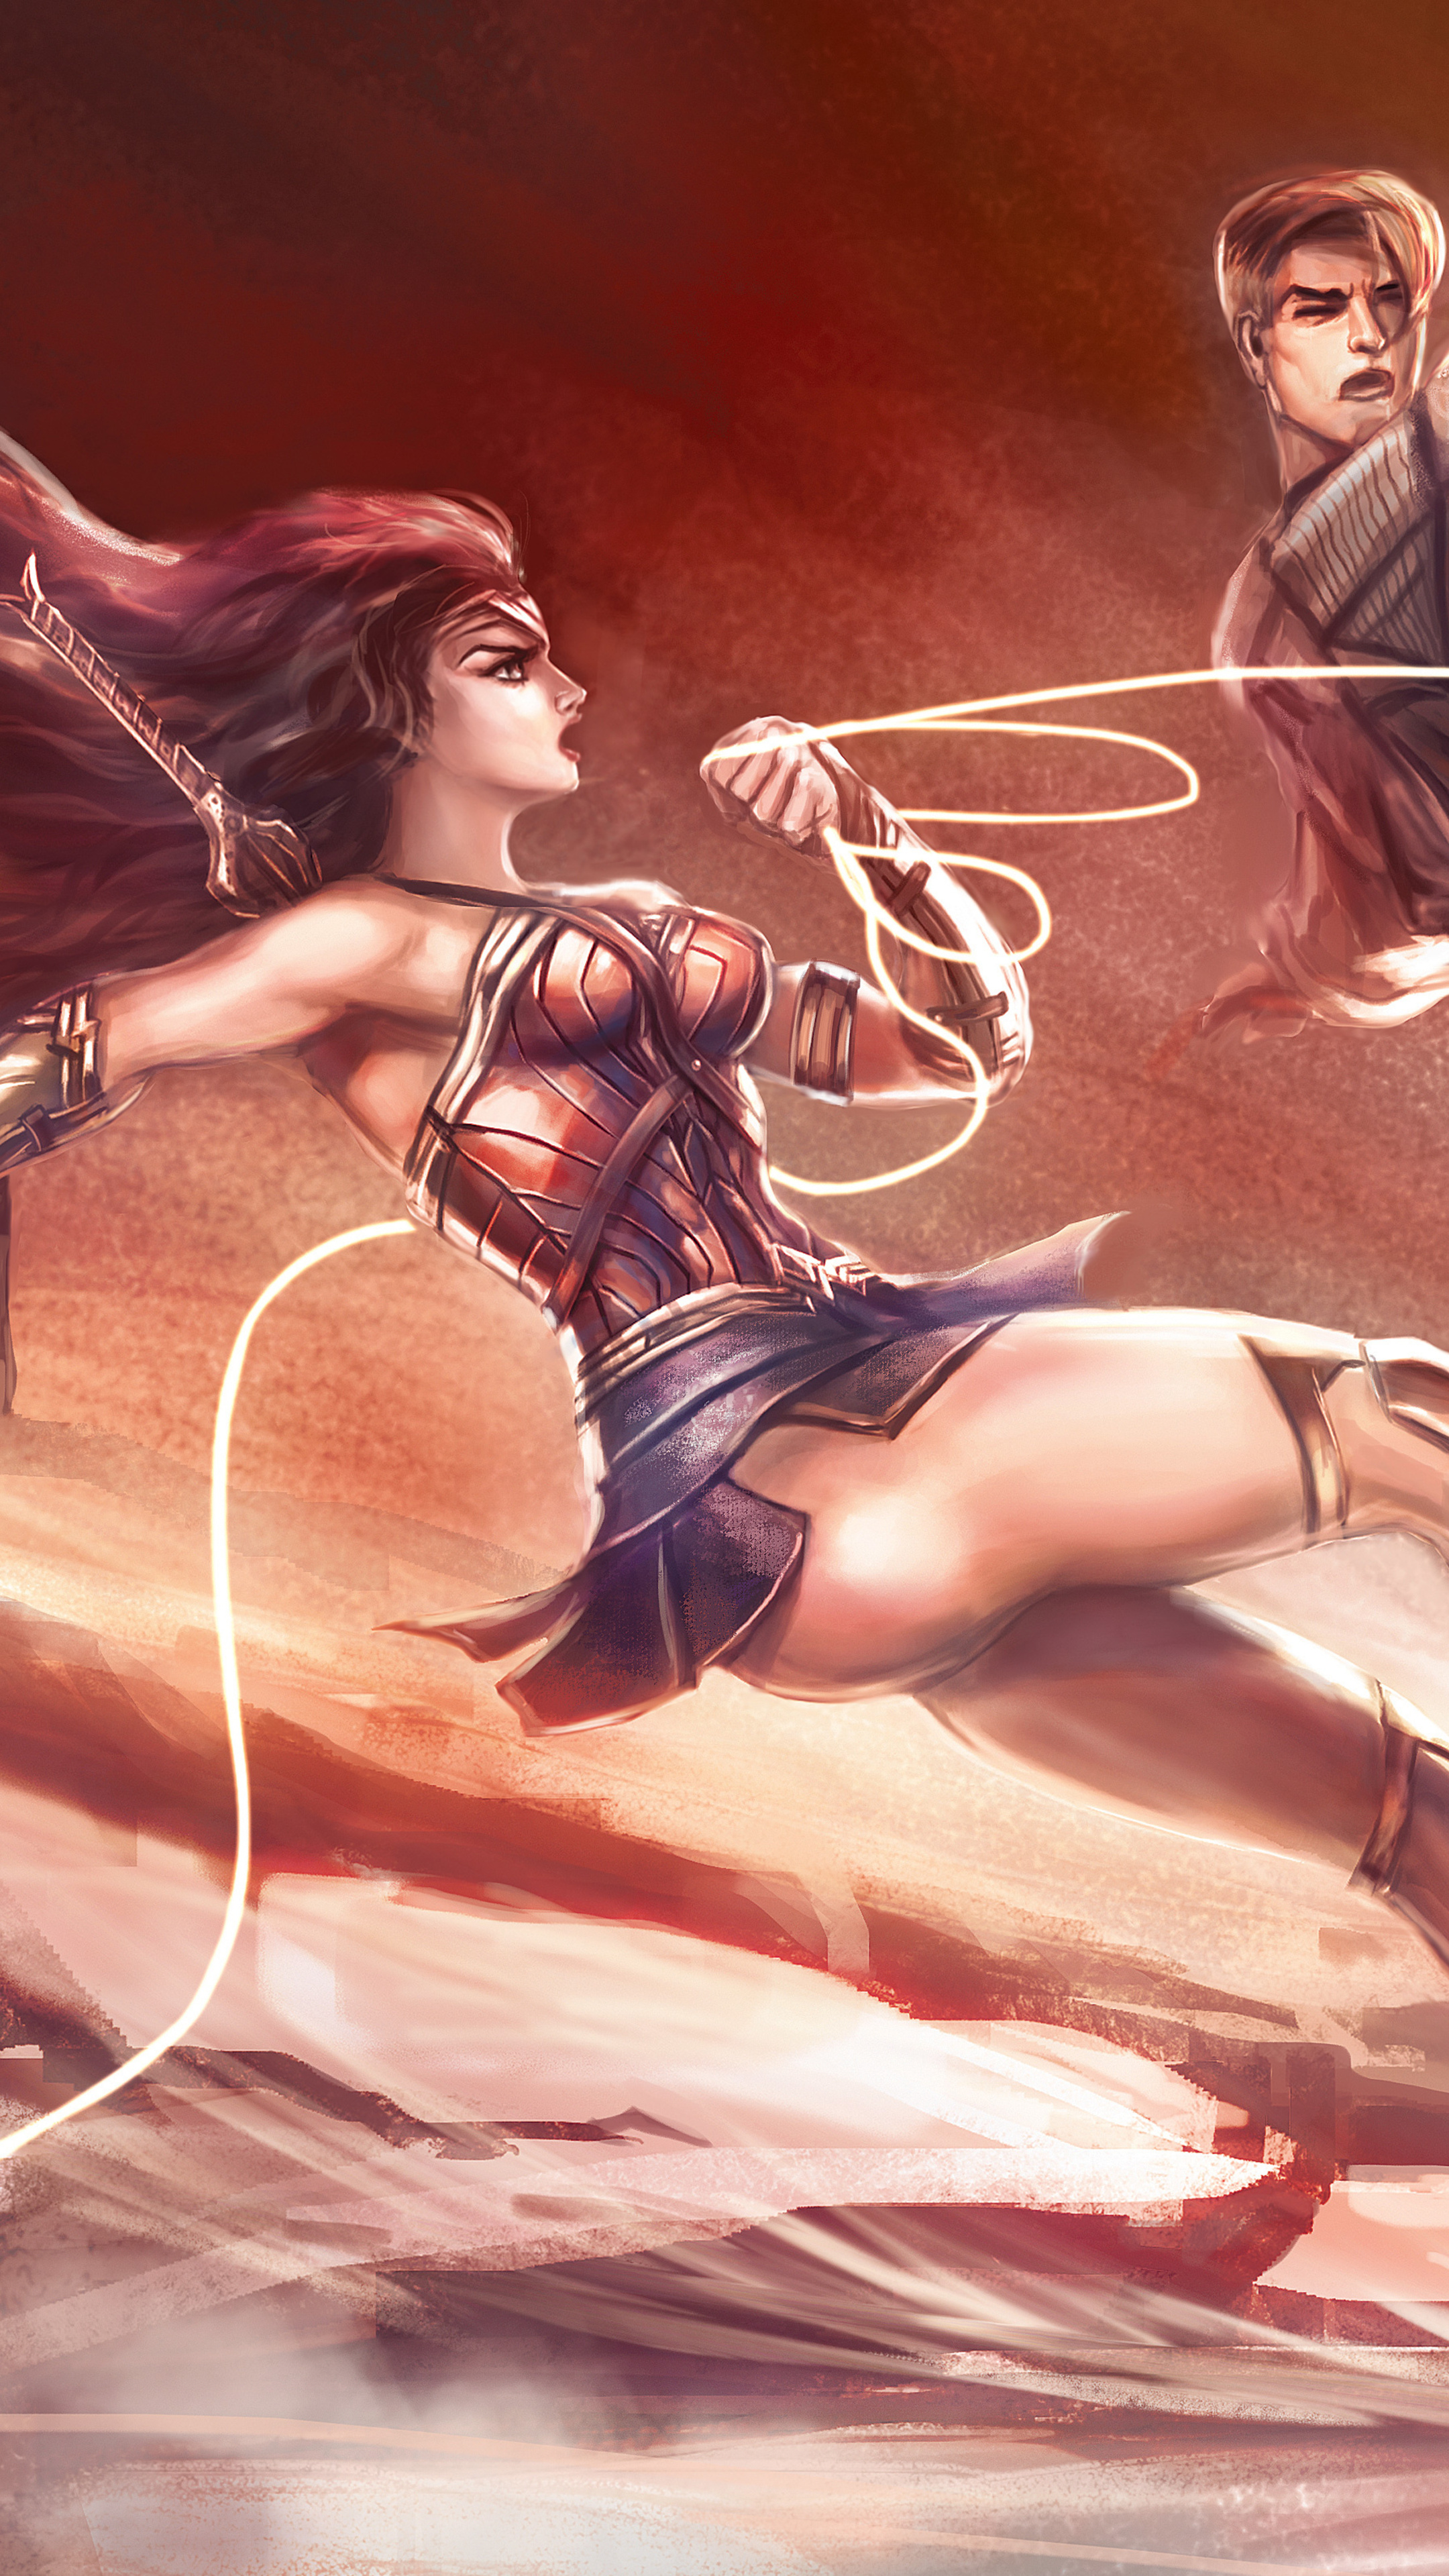 wonder-woman-love-in-war-l8.jpg